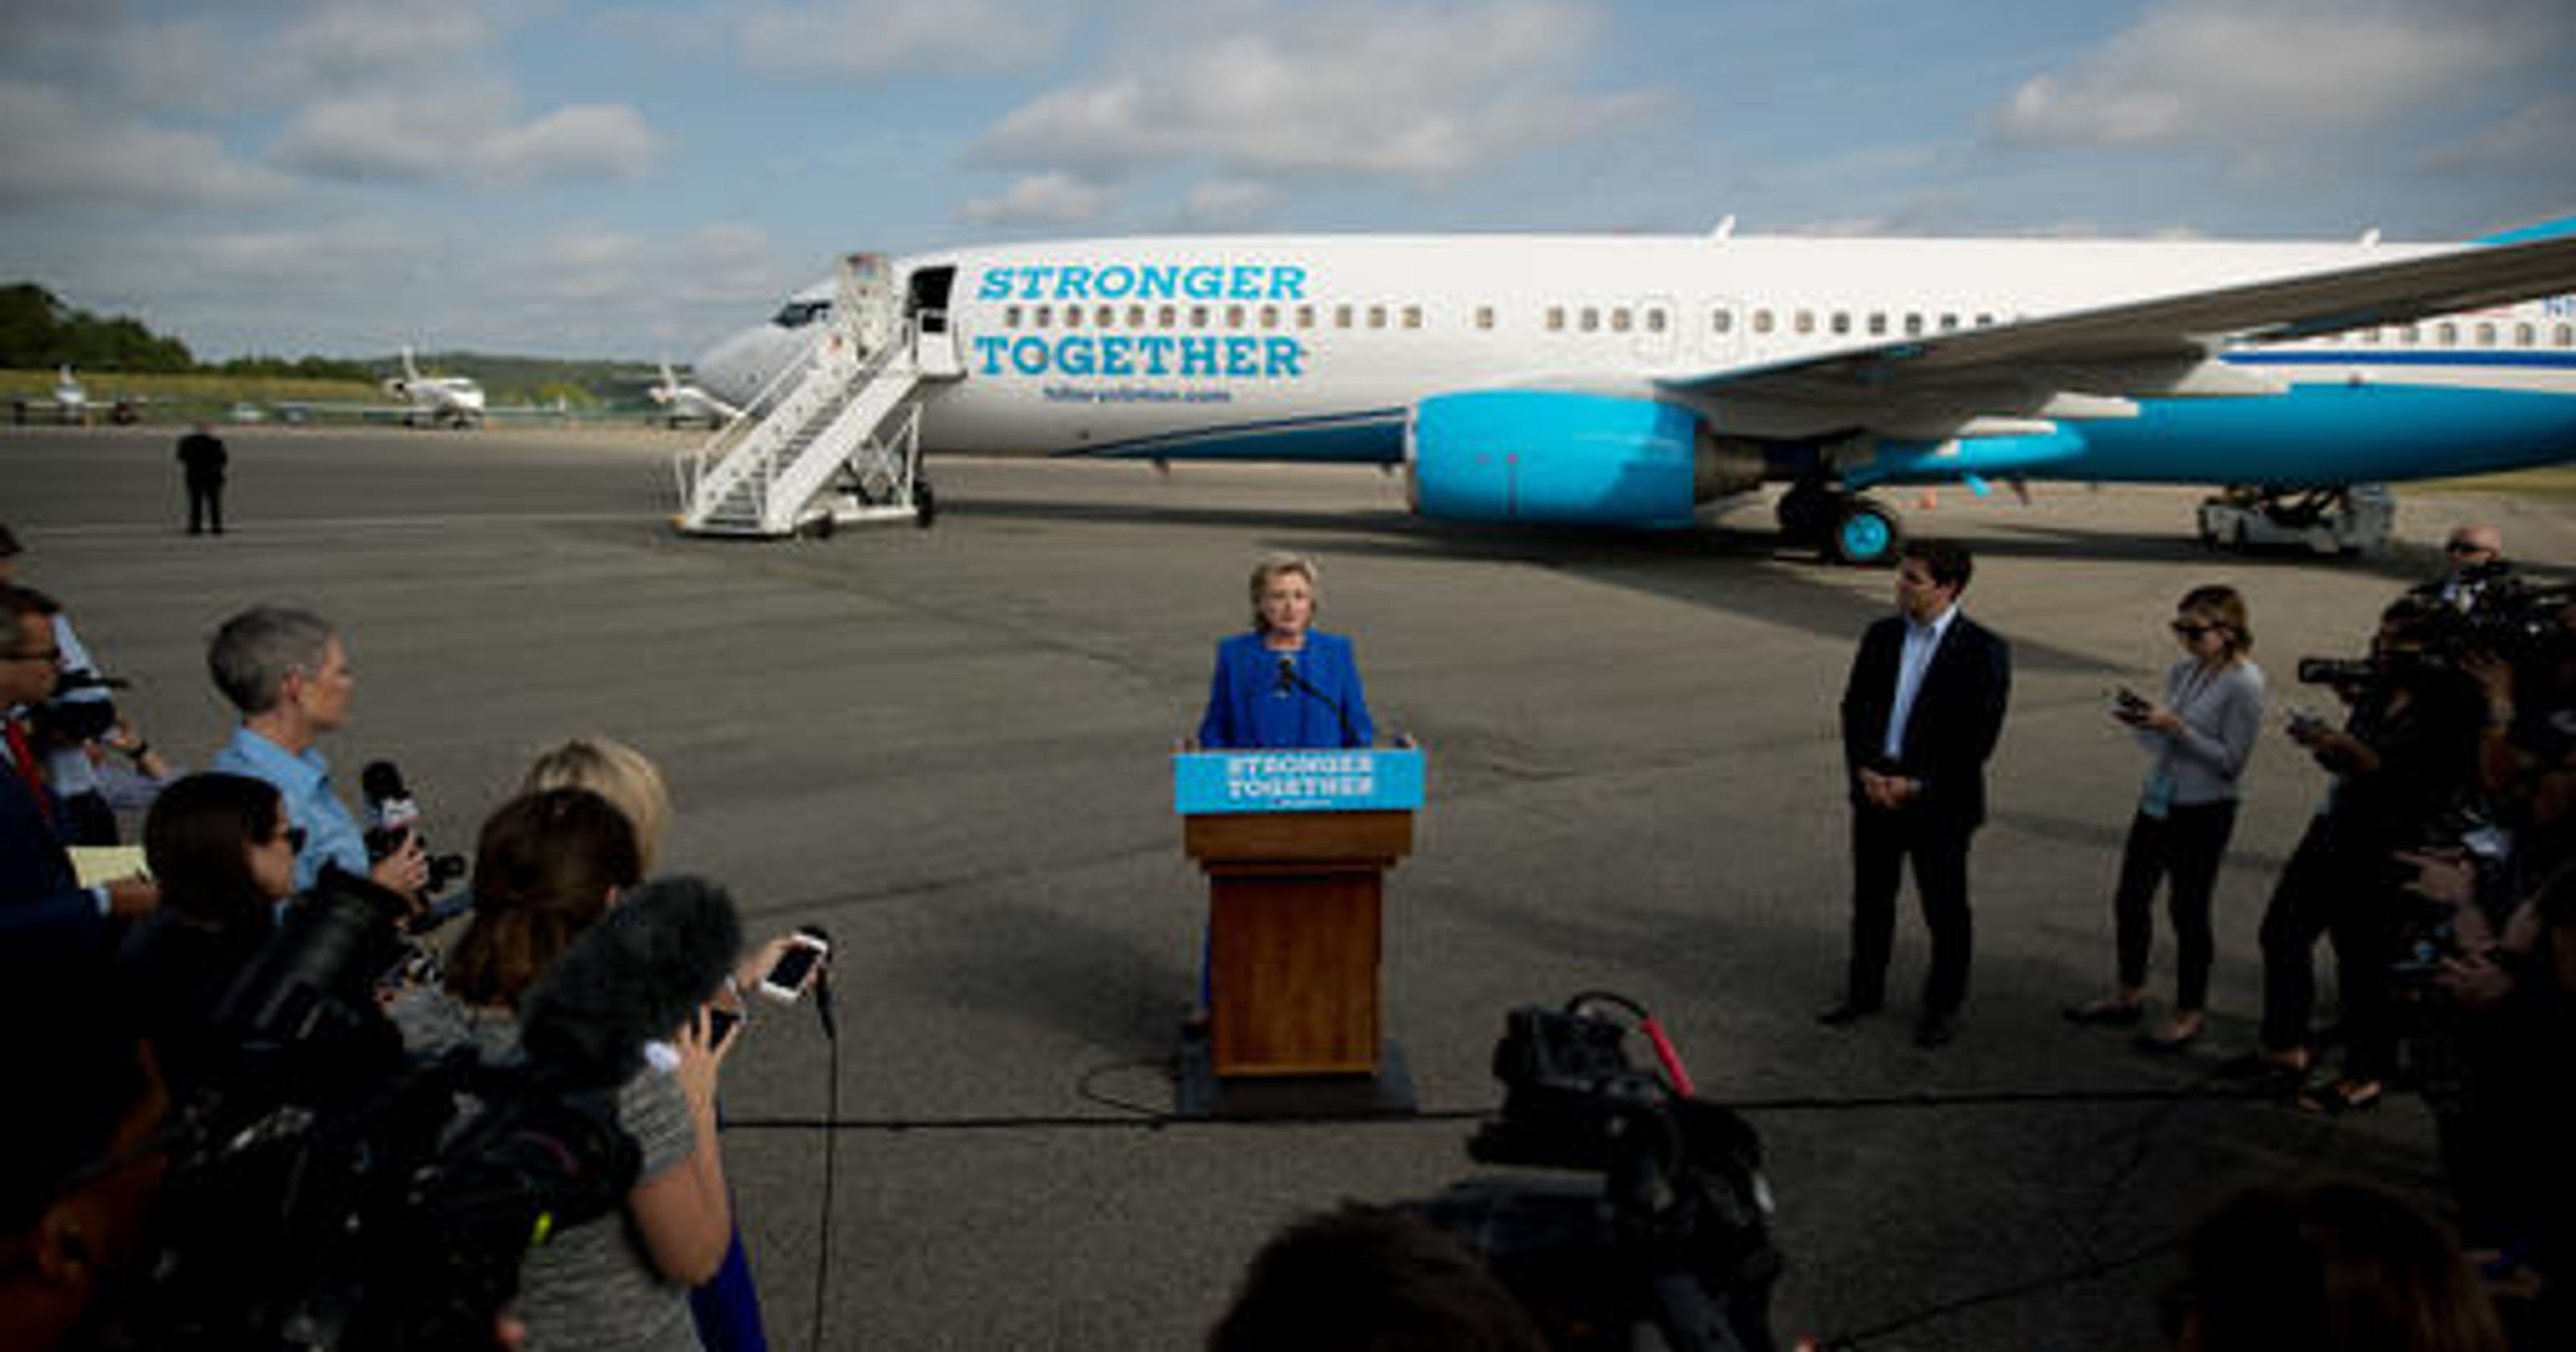 Hillary Clinton's plane: 5 things to know